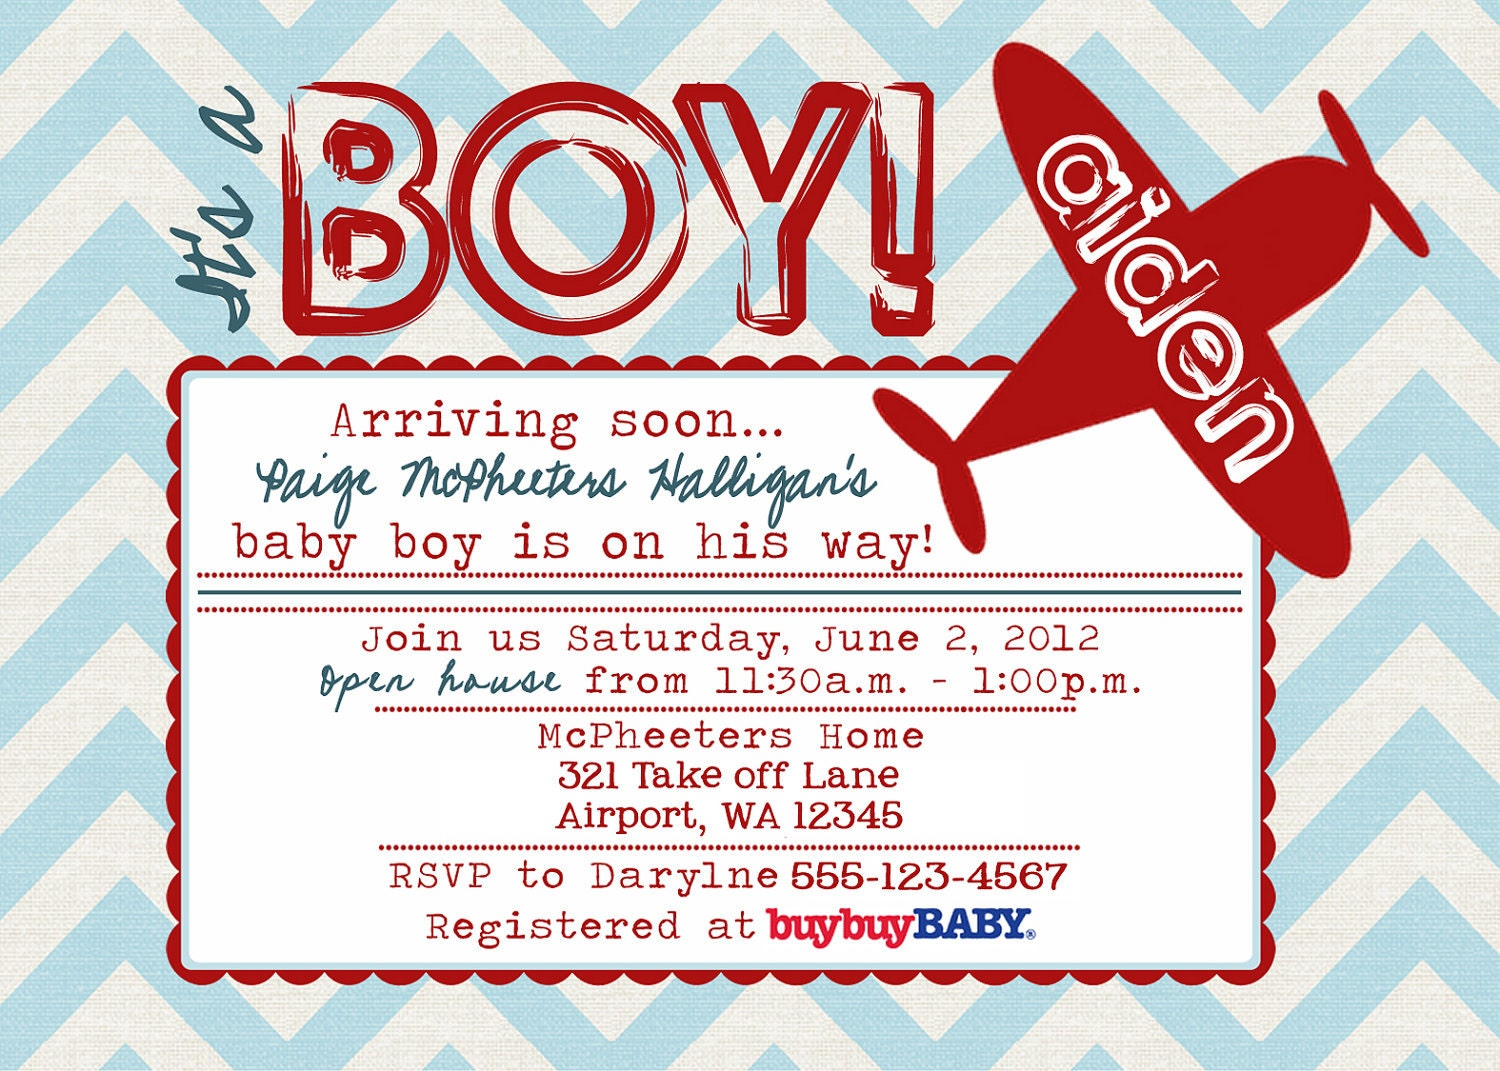 printable postcard vintage airplane baby shower by digigoose